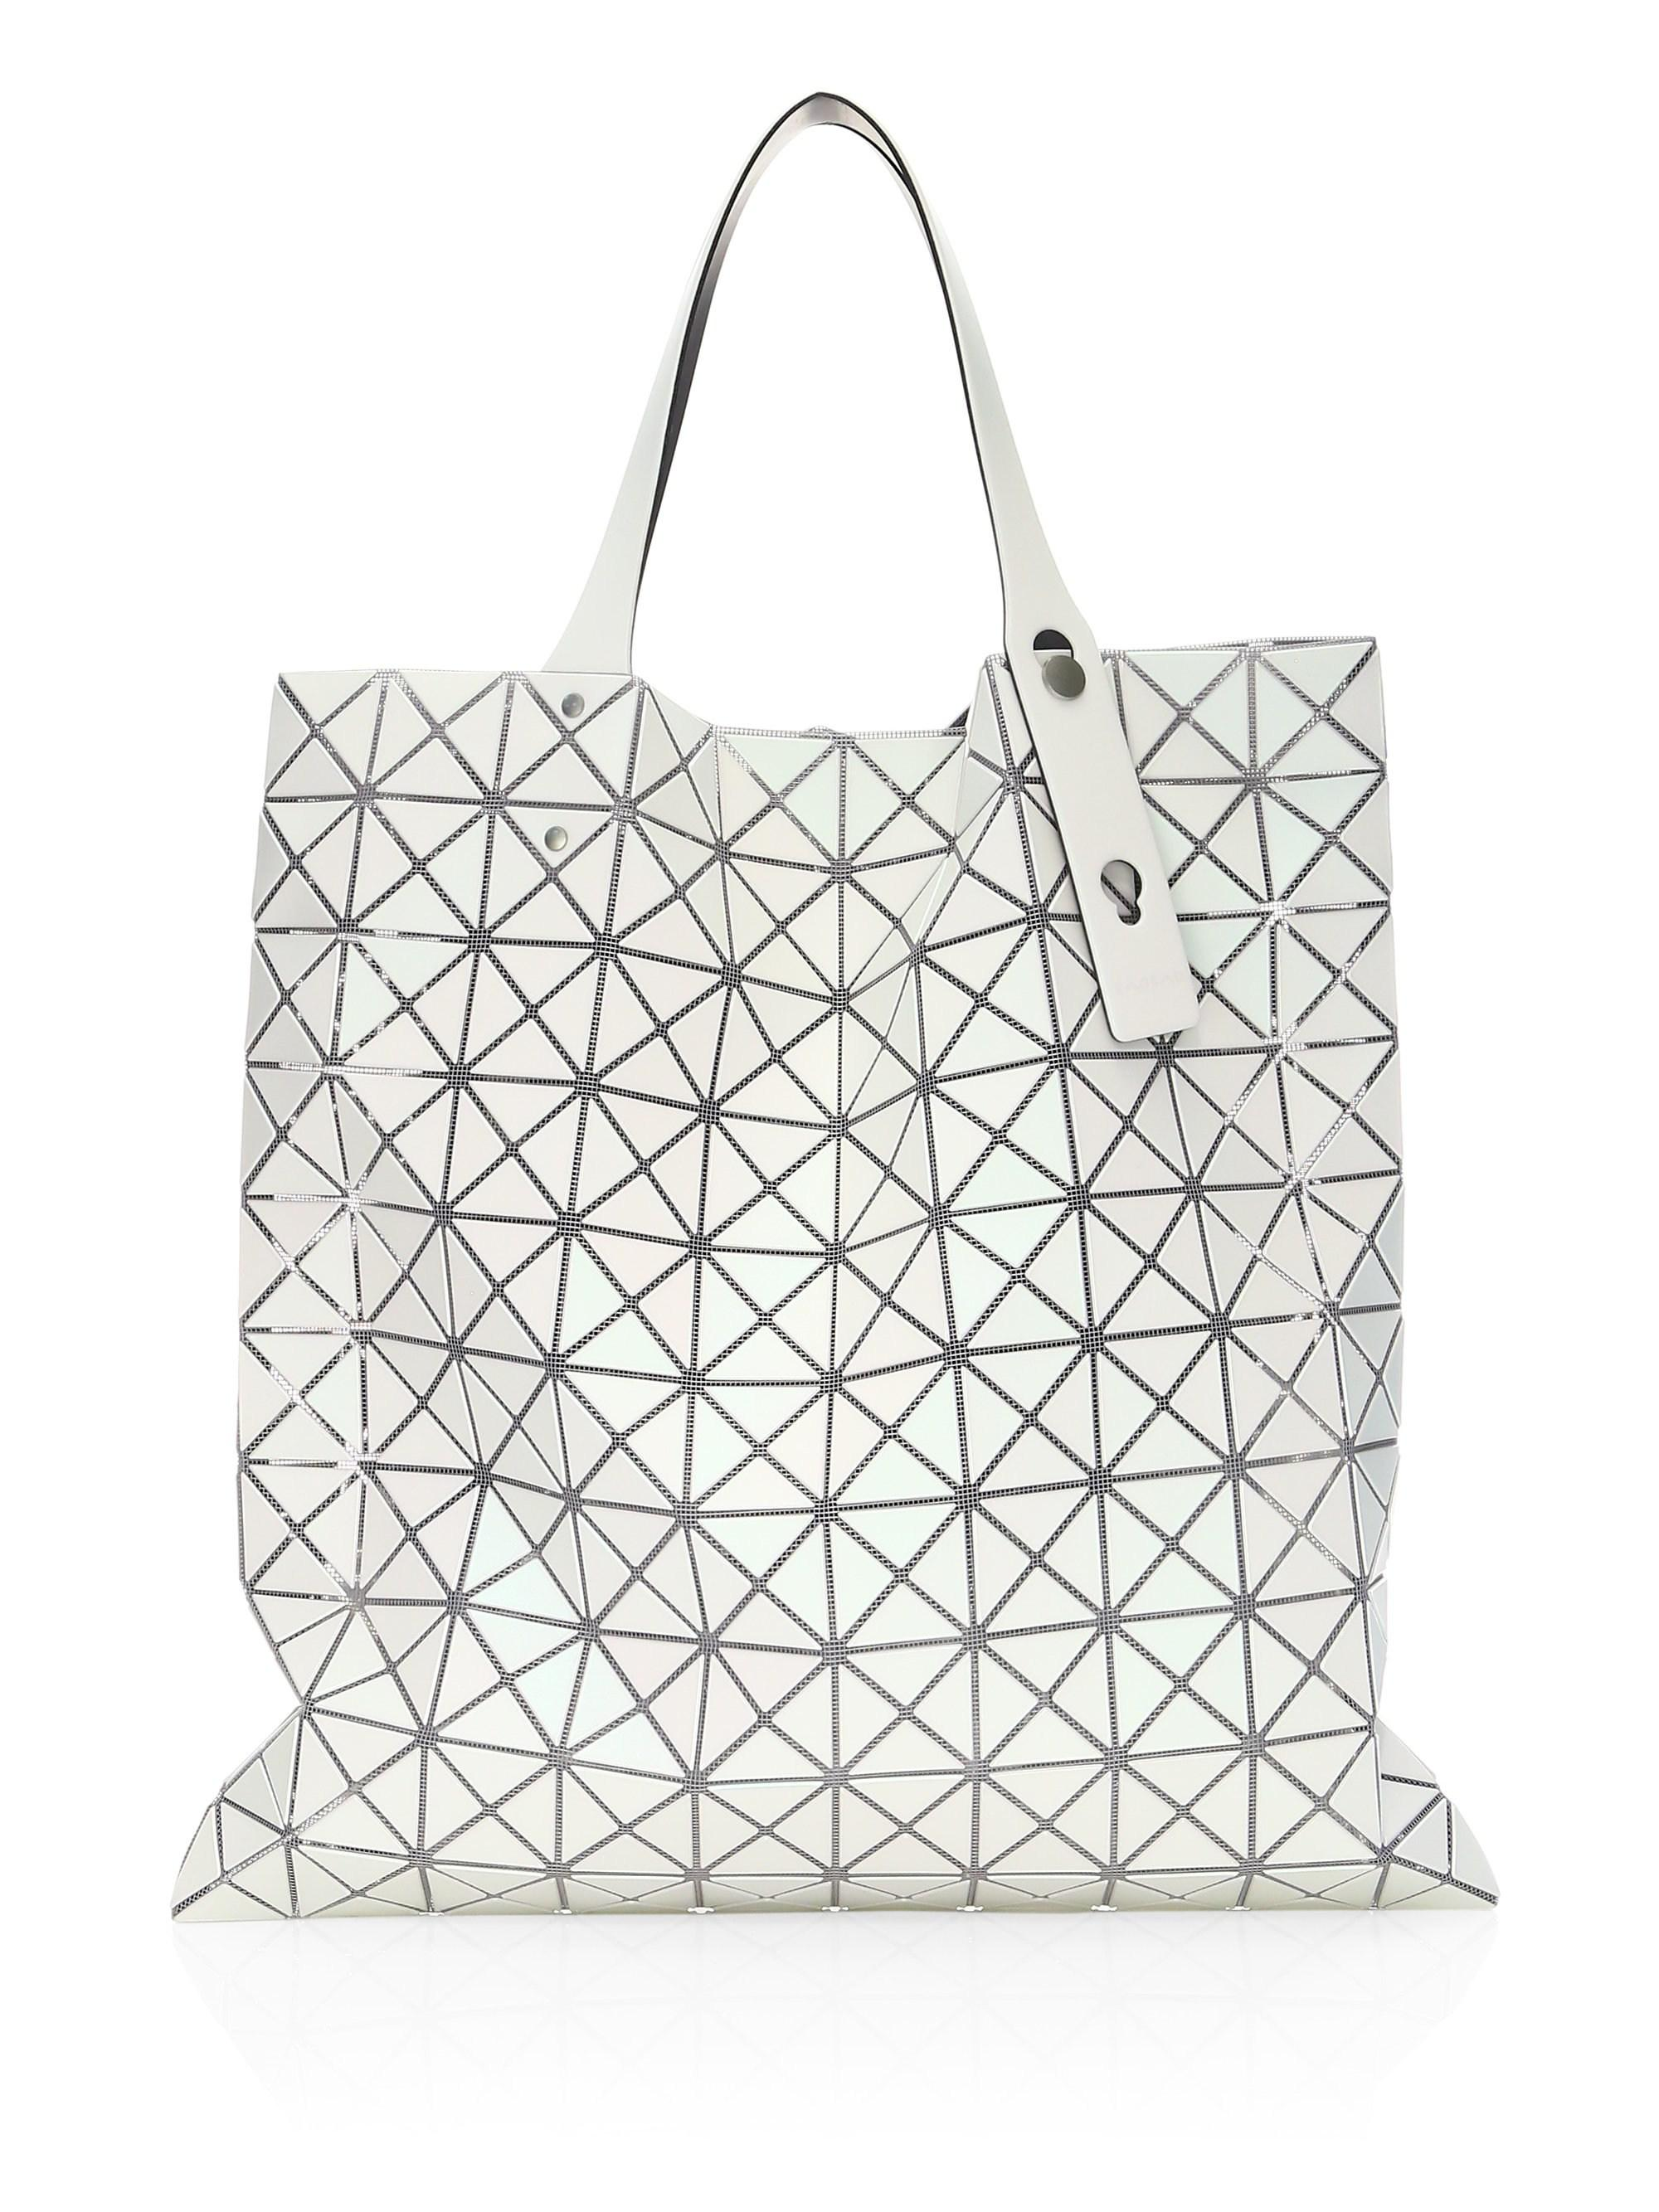 Bao Bao Issey Miyake White Prism Frost Tote in White - Lyst a67b1cab0f37f